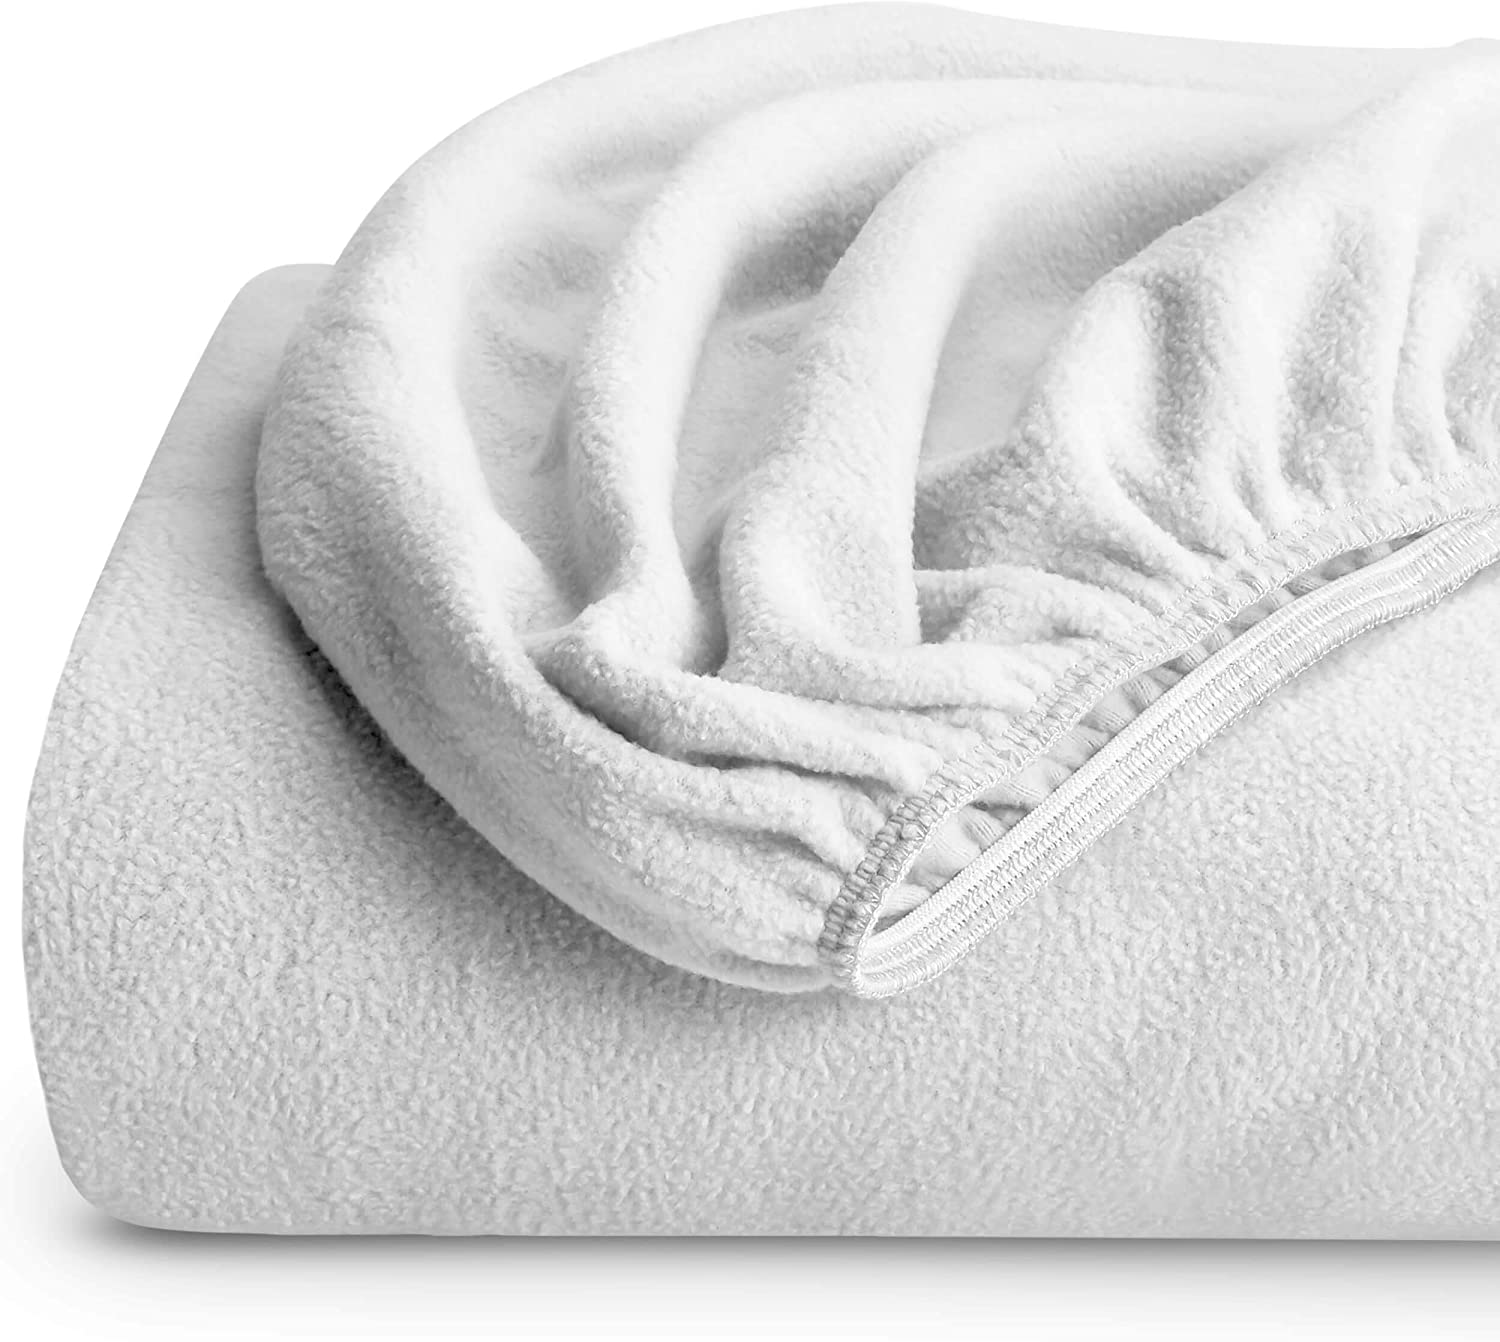 Bare Home Super Soft Fleece Fitted Sheet - Twin Extra Long Size - Extra Plush Polar Fleece, Pill Resistant - Deep Pocket - All Season Cozy Warmth, Breathable & Hypoallergenic (Twin XL, White)